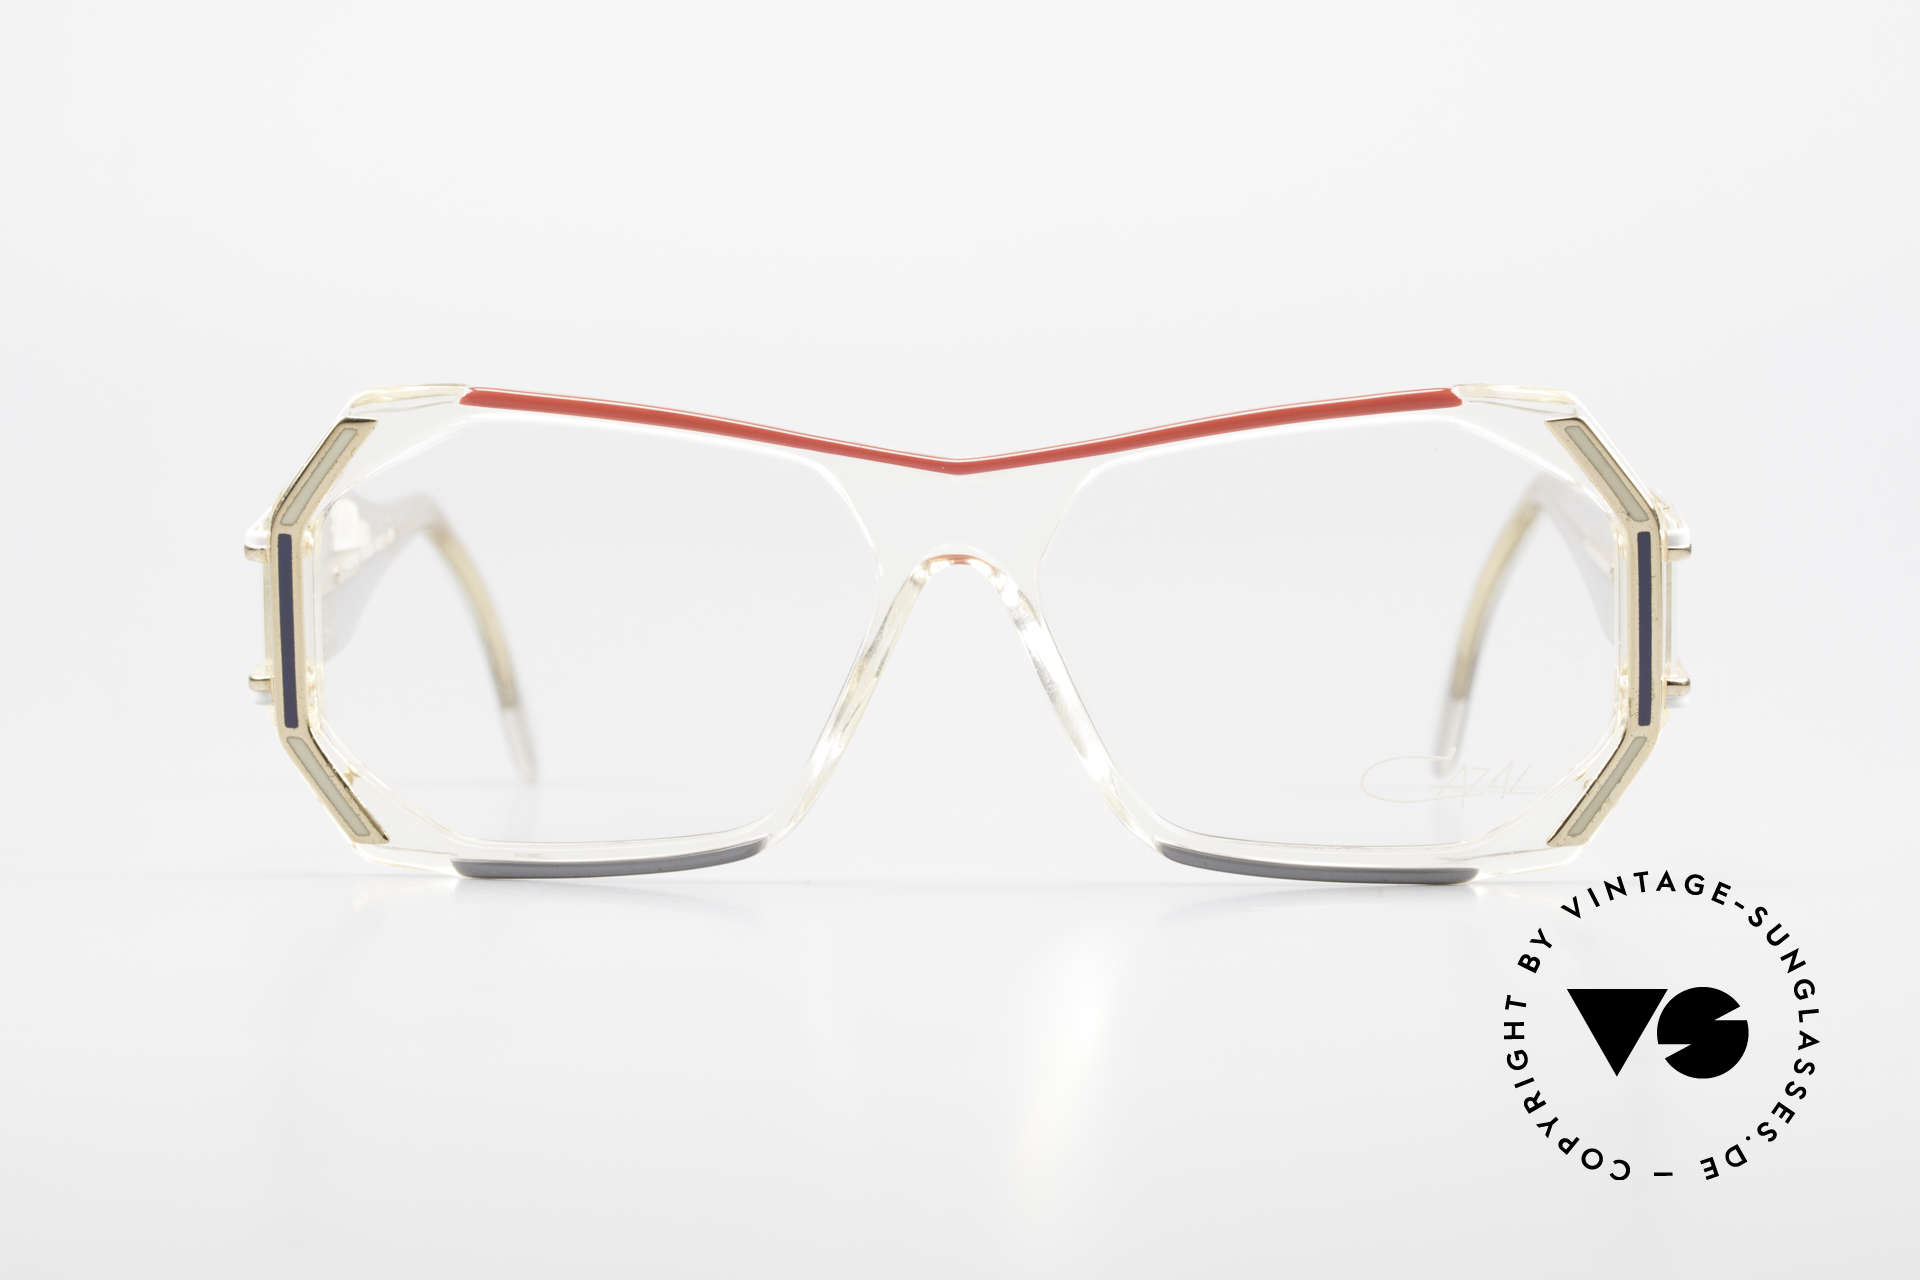 Cazal 182 80's HipHop Old School Frame, at that time, inherent part of the US Hip-Hop scene, Made for Men and Women